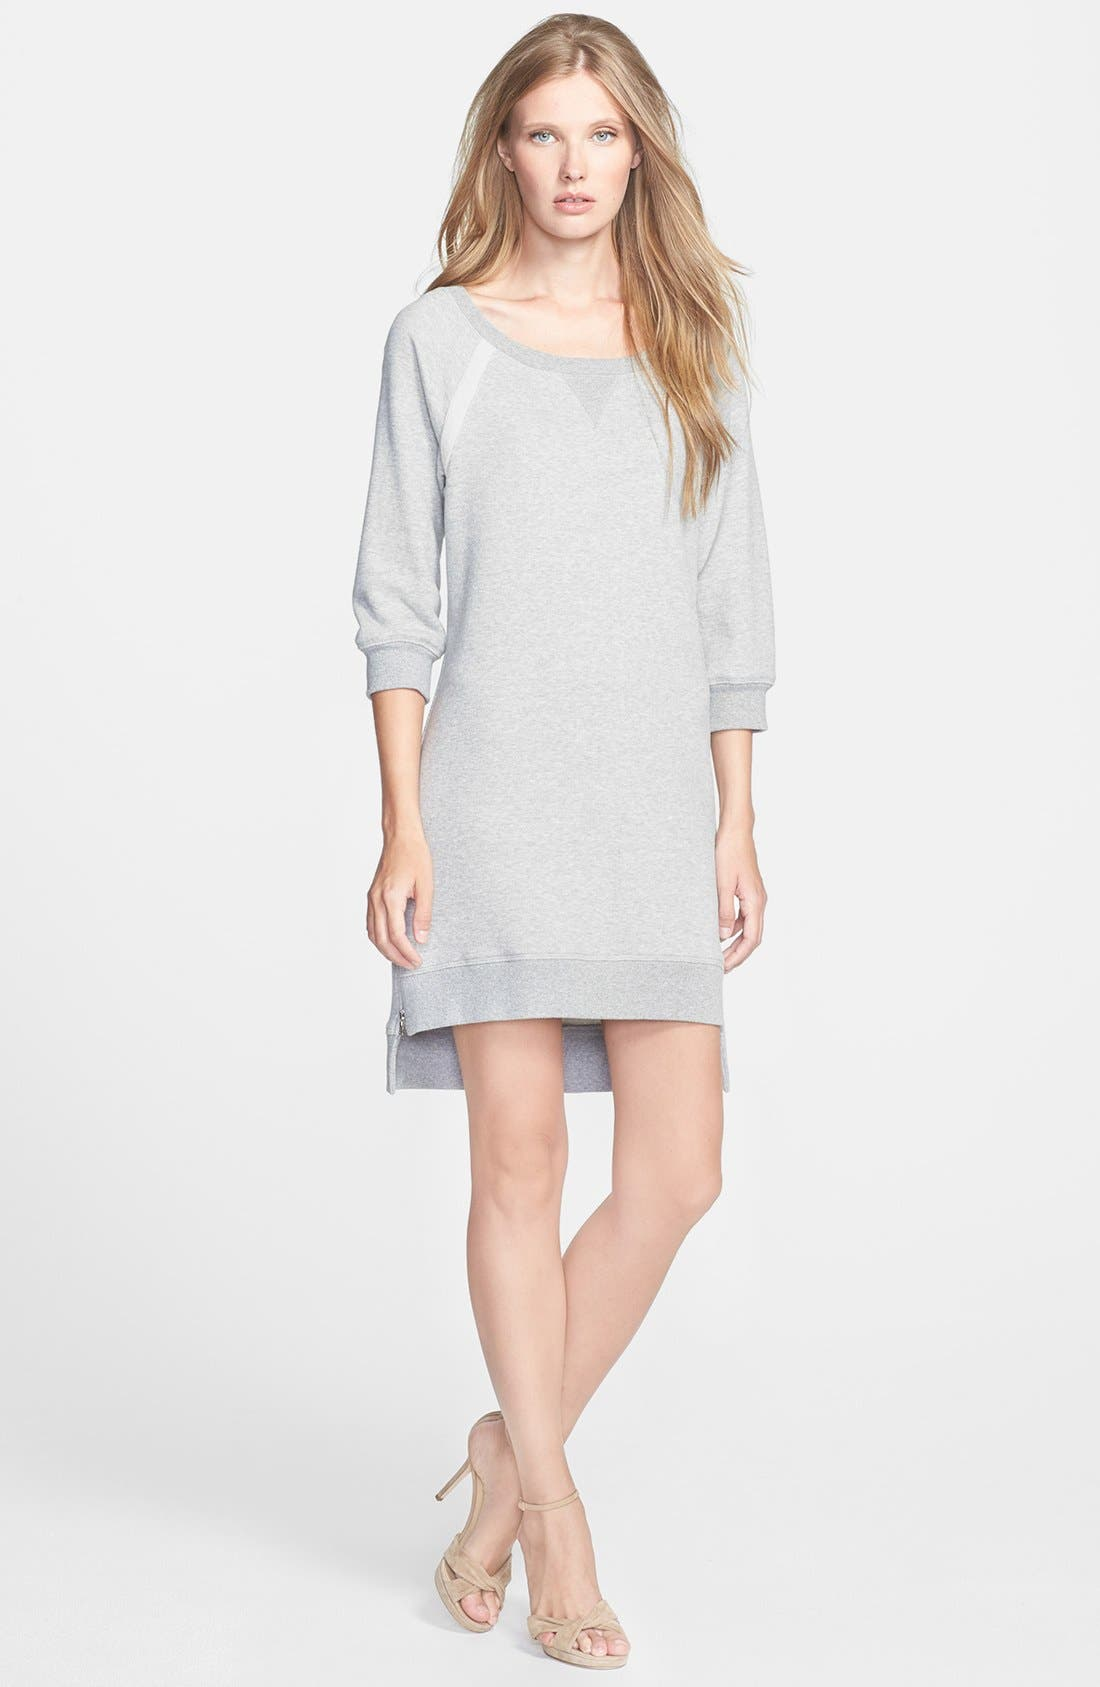 Main Image - Trina Turk 'Venecia' Terry Sweatshirt Dress